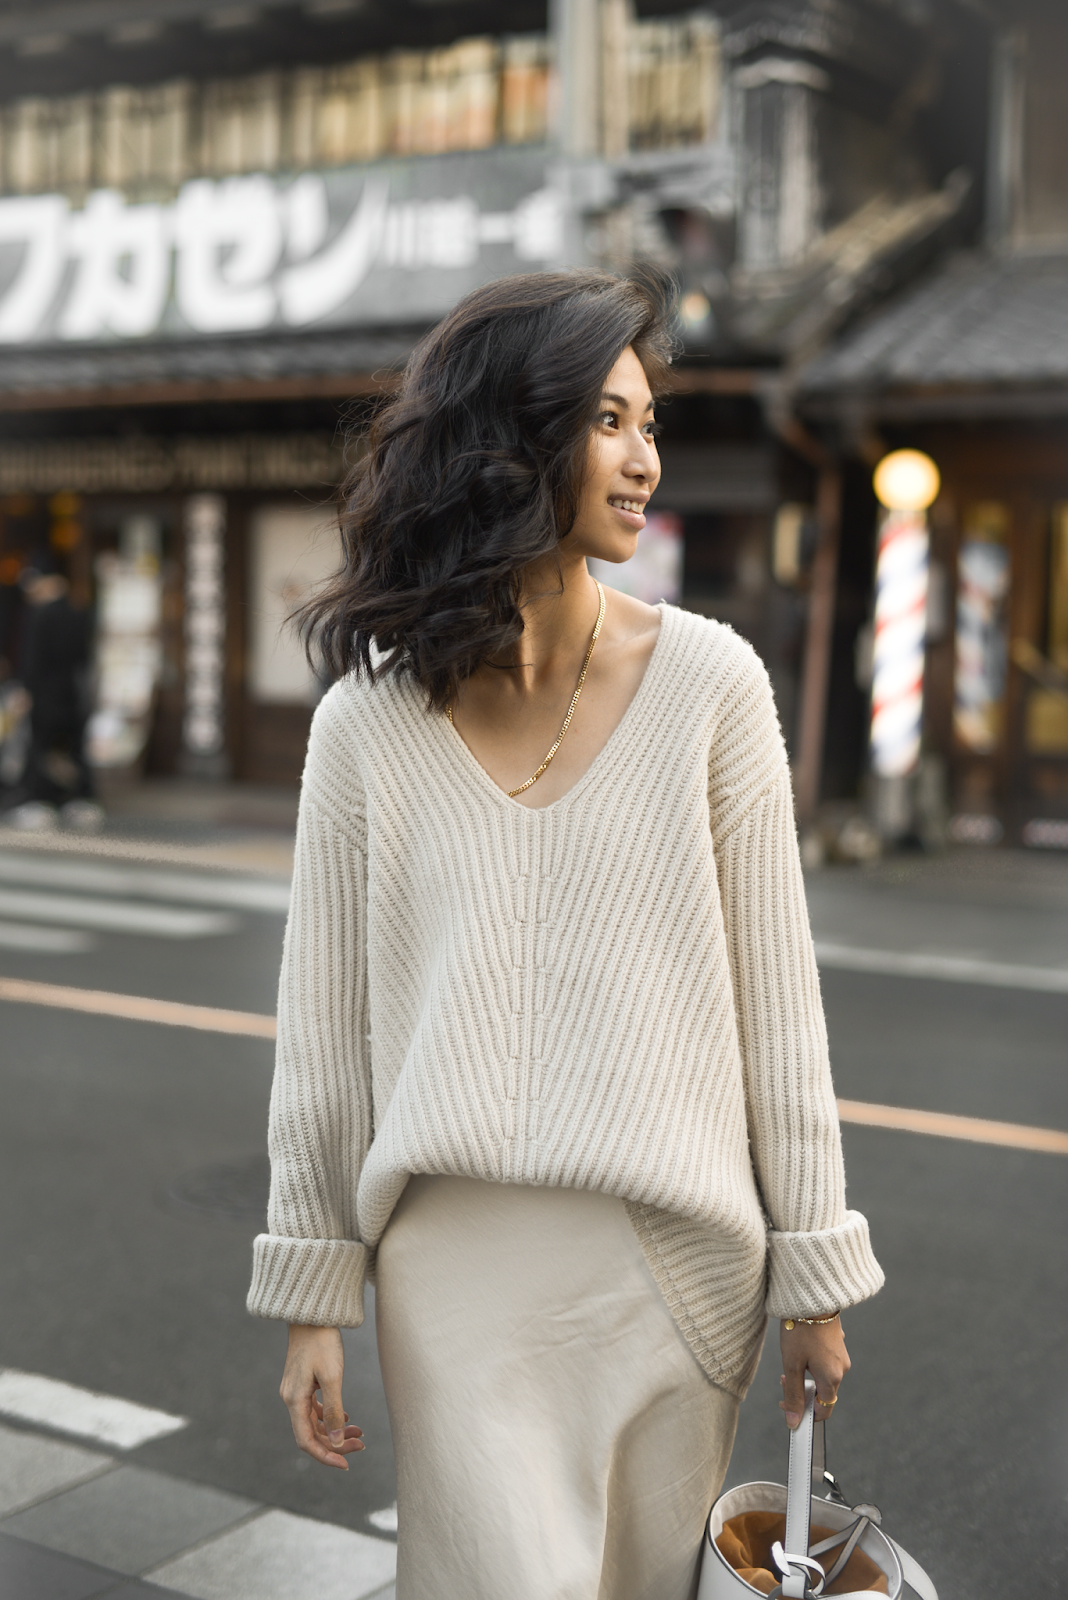 Much Needed Distractions / 102018 | Knit skirt outfit